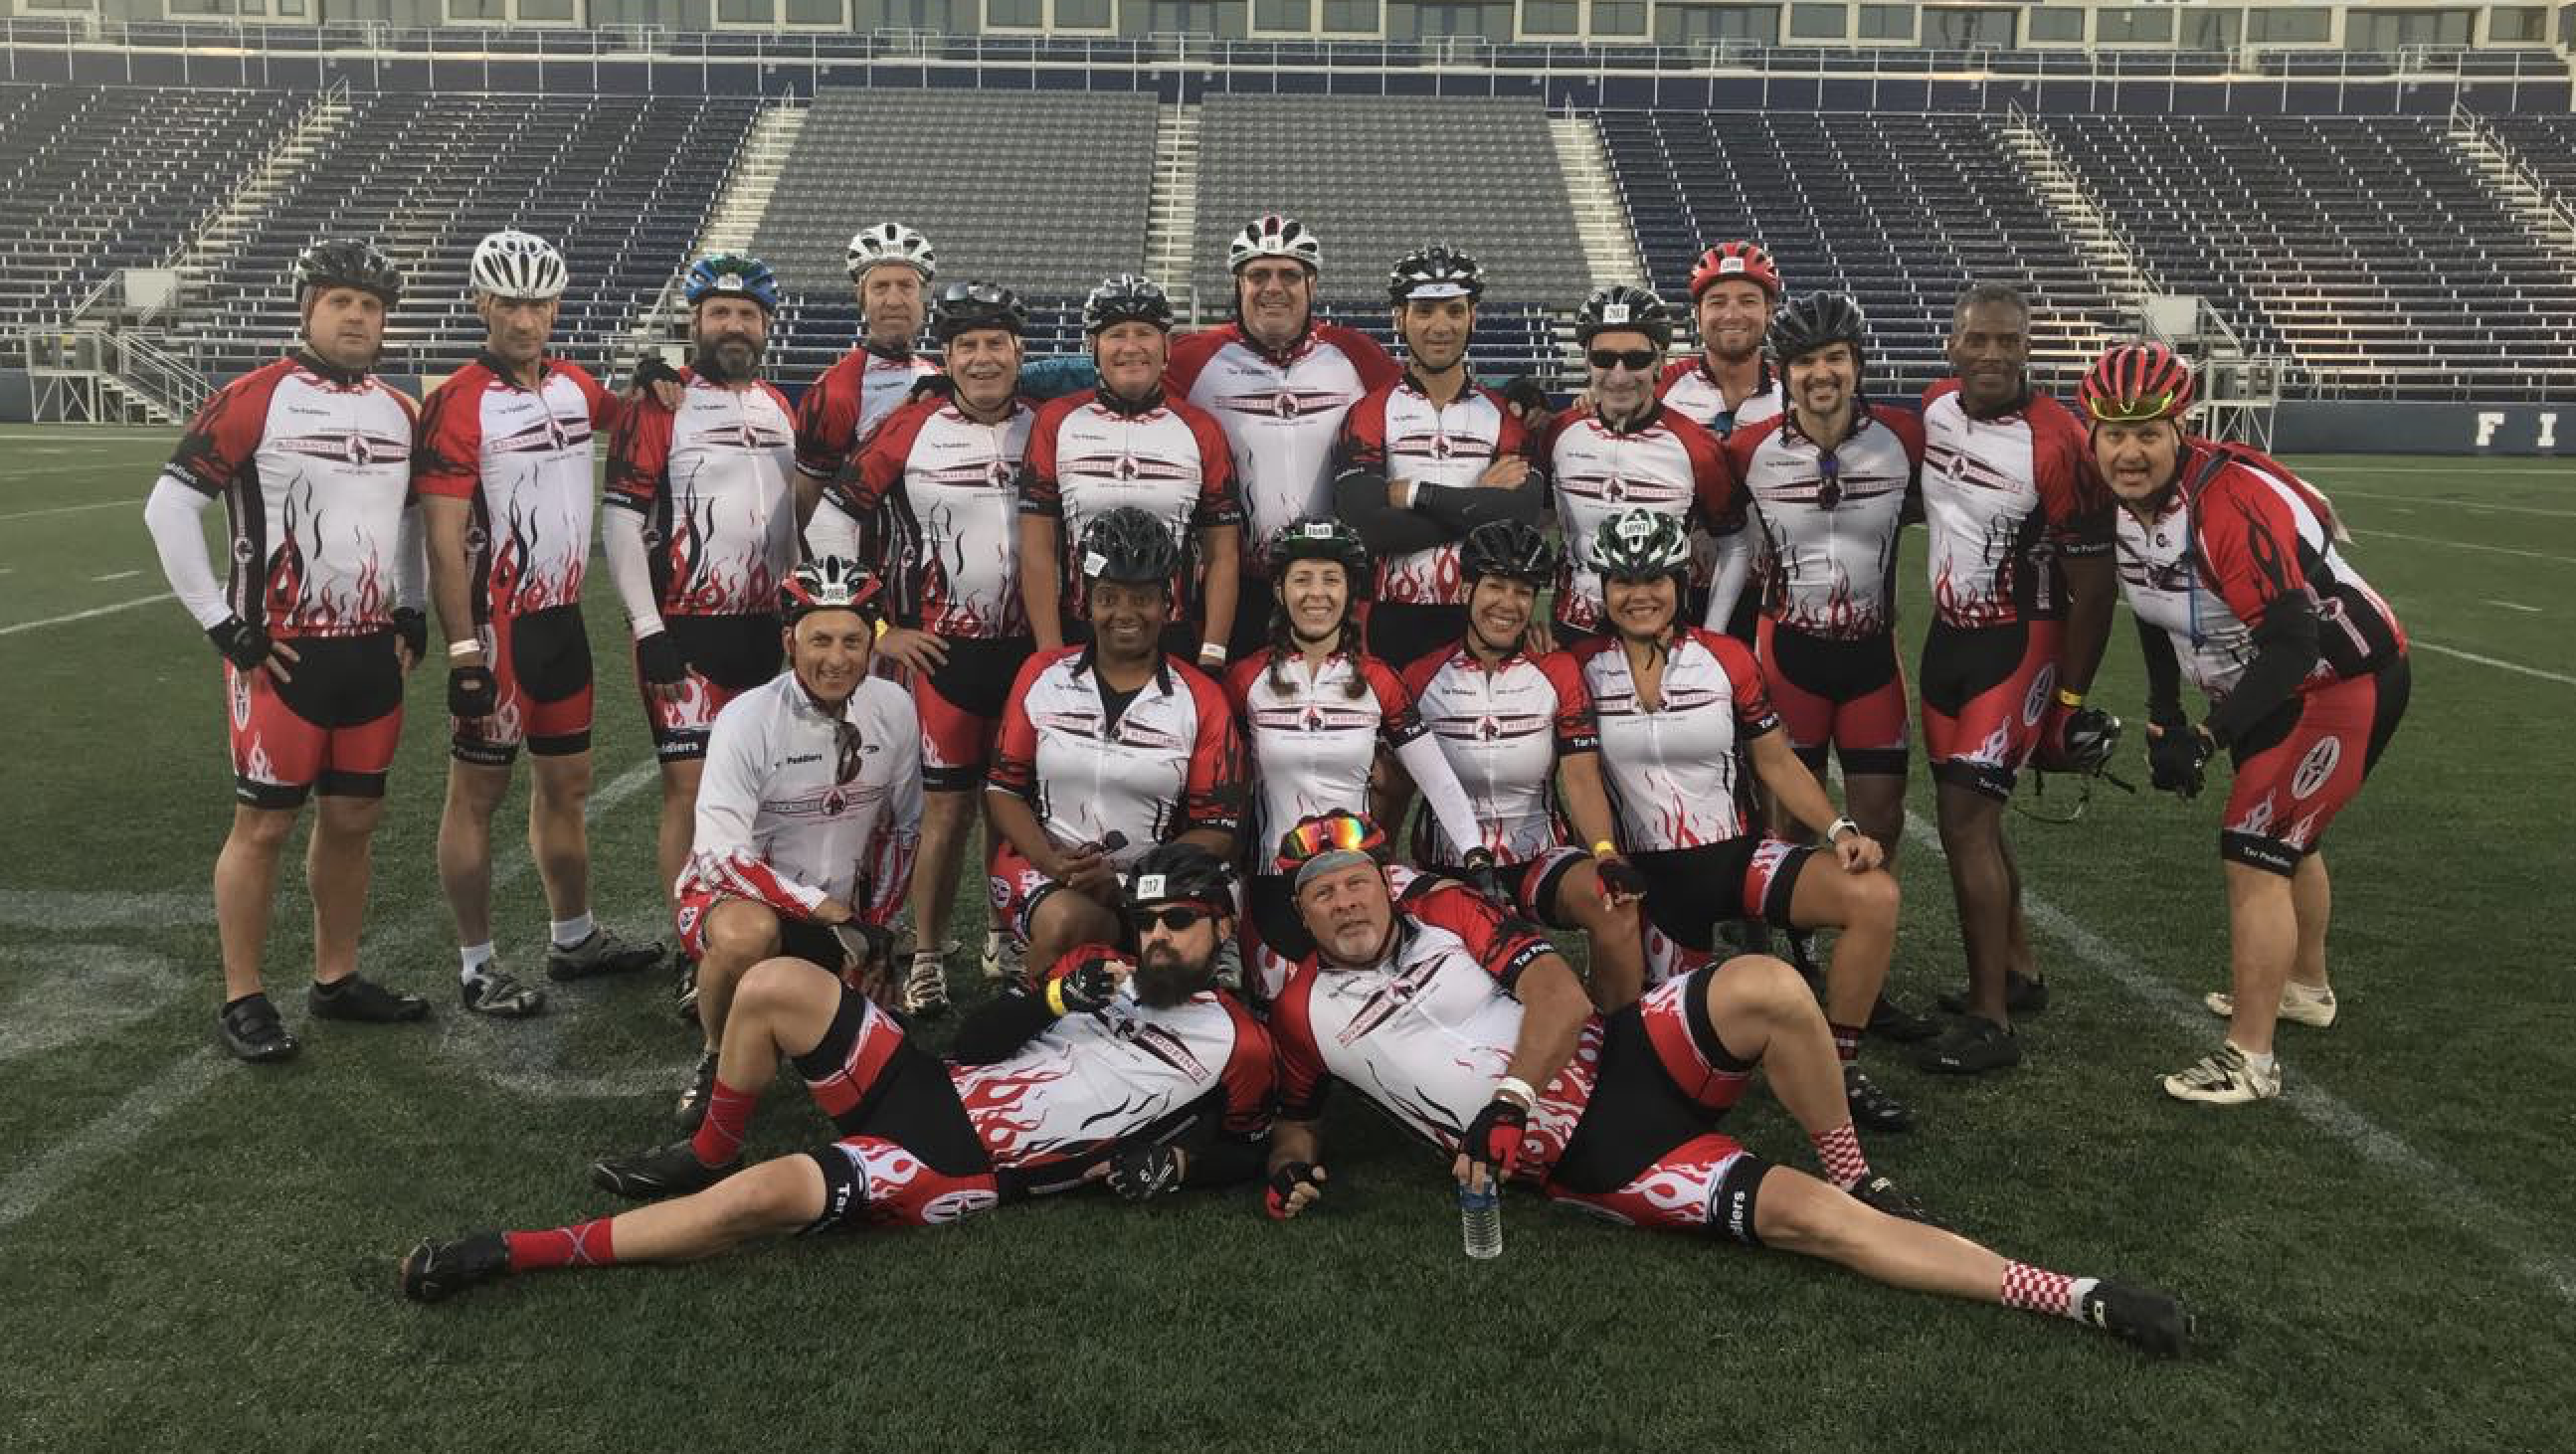 The bicycling team from Advanced Roofing Inc. participated in the Multiple Sclerosis (MS) Bike Ride for the 15th consecutive year